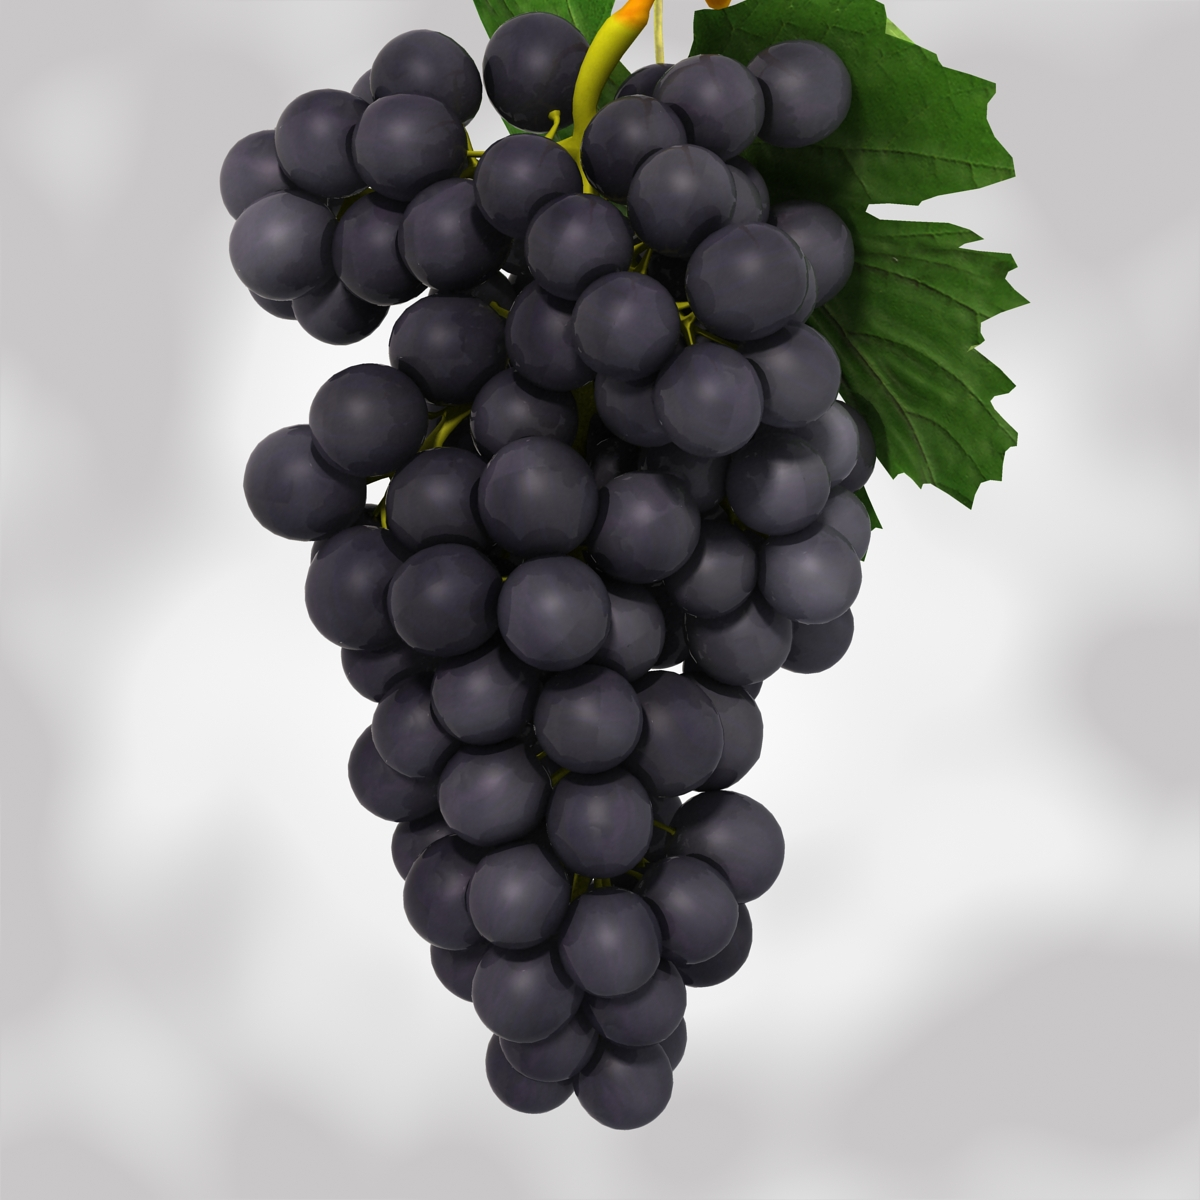 grapes black and blue 3d model 3ds max fbx c4d obj 204271